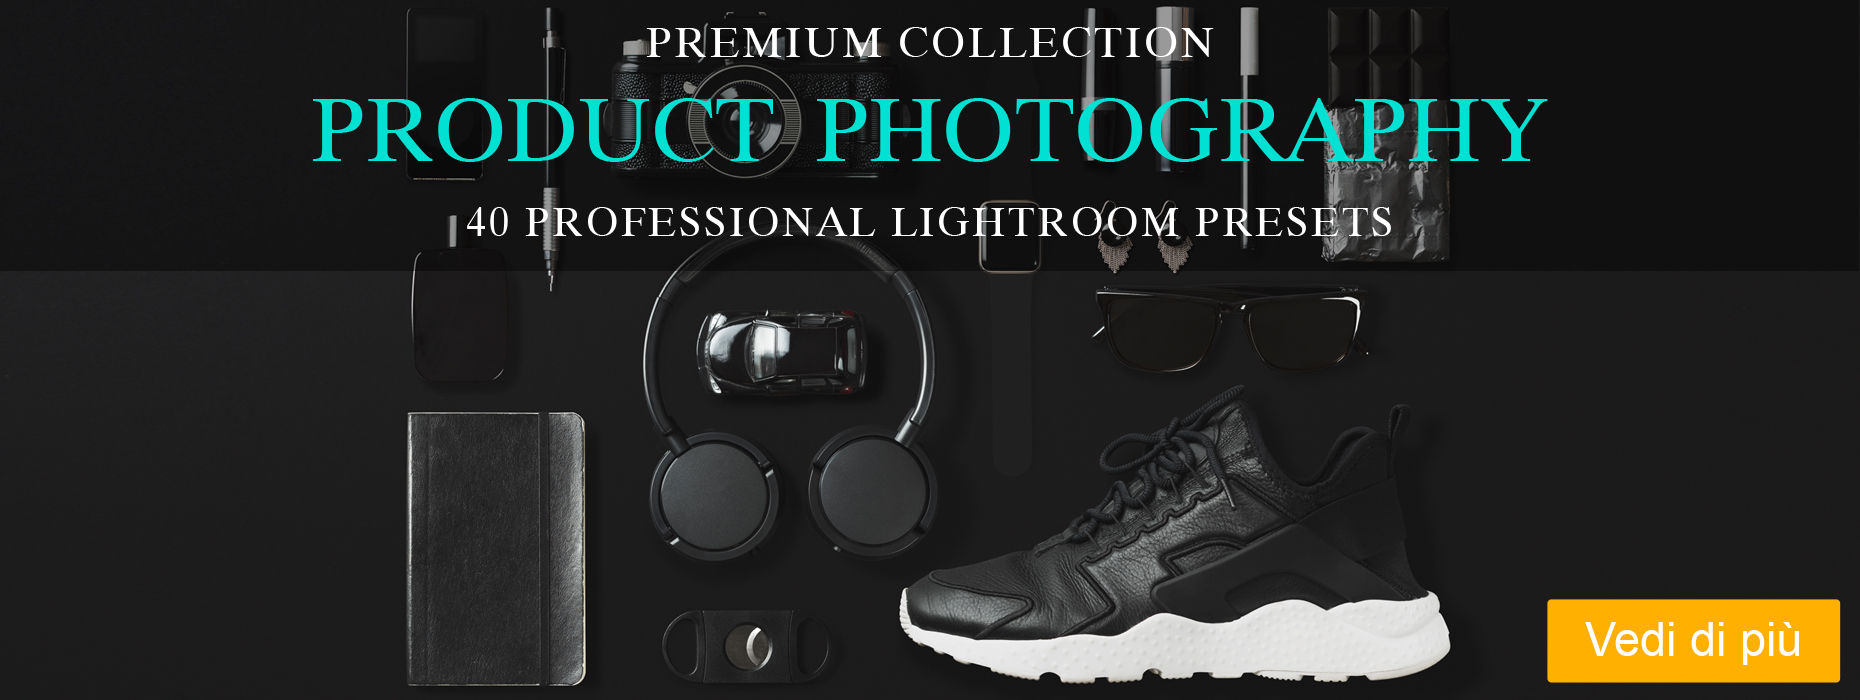 preset lightroom gratis macchina product collection